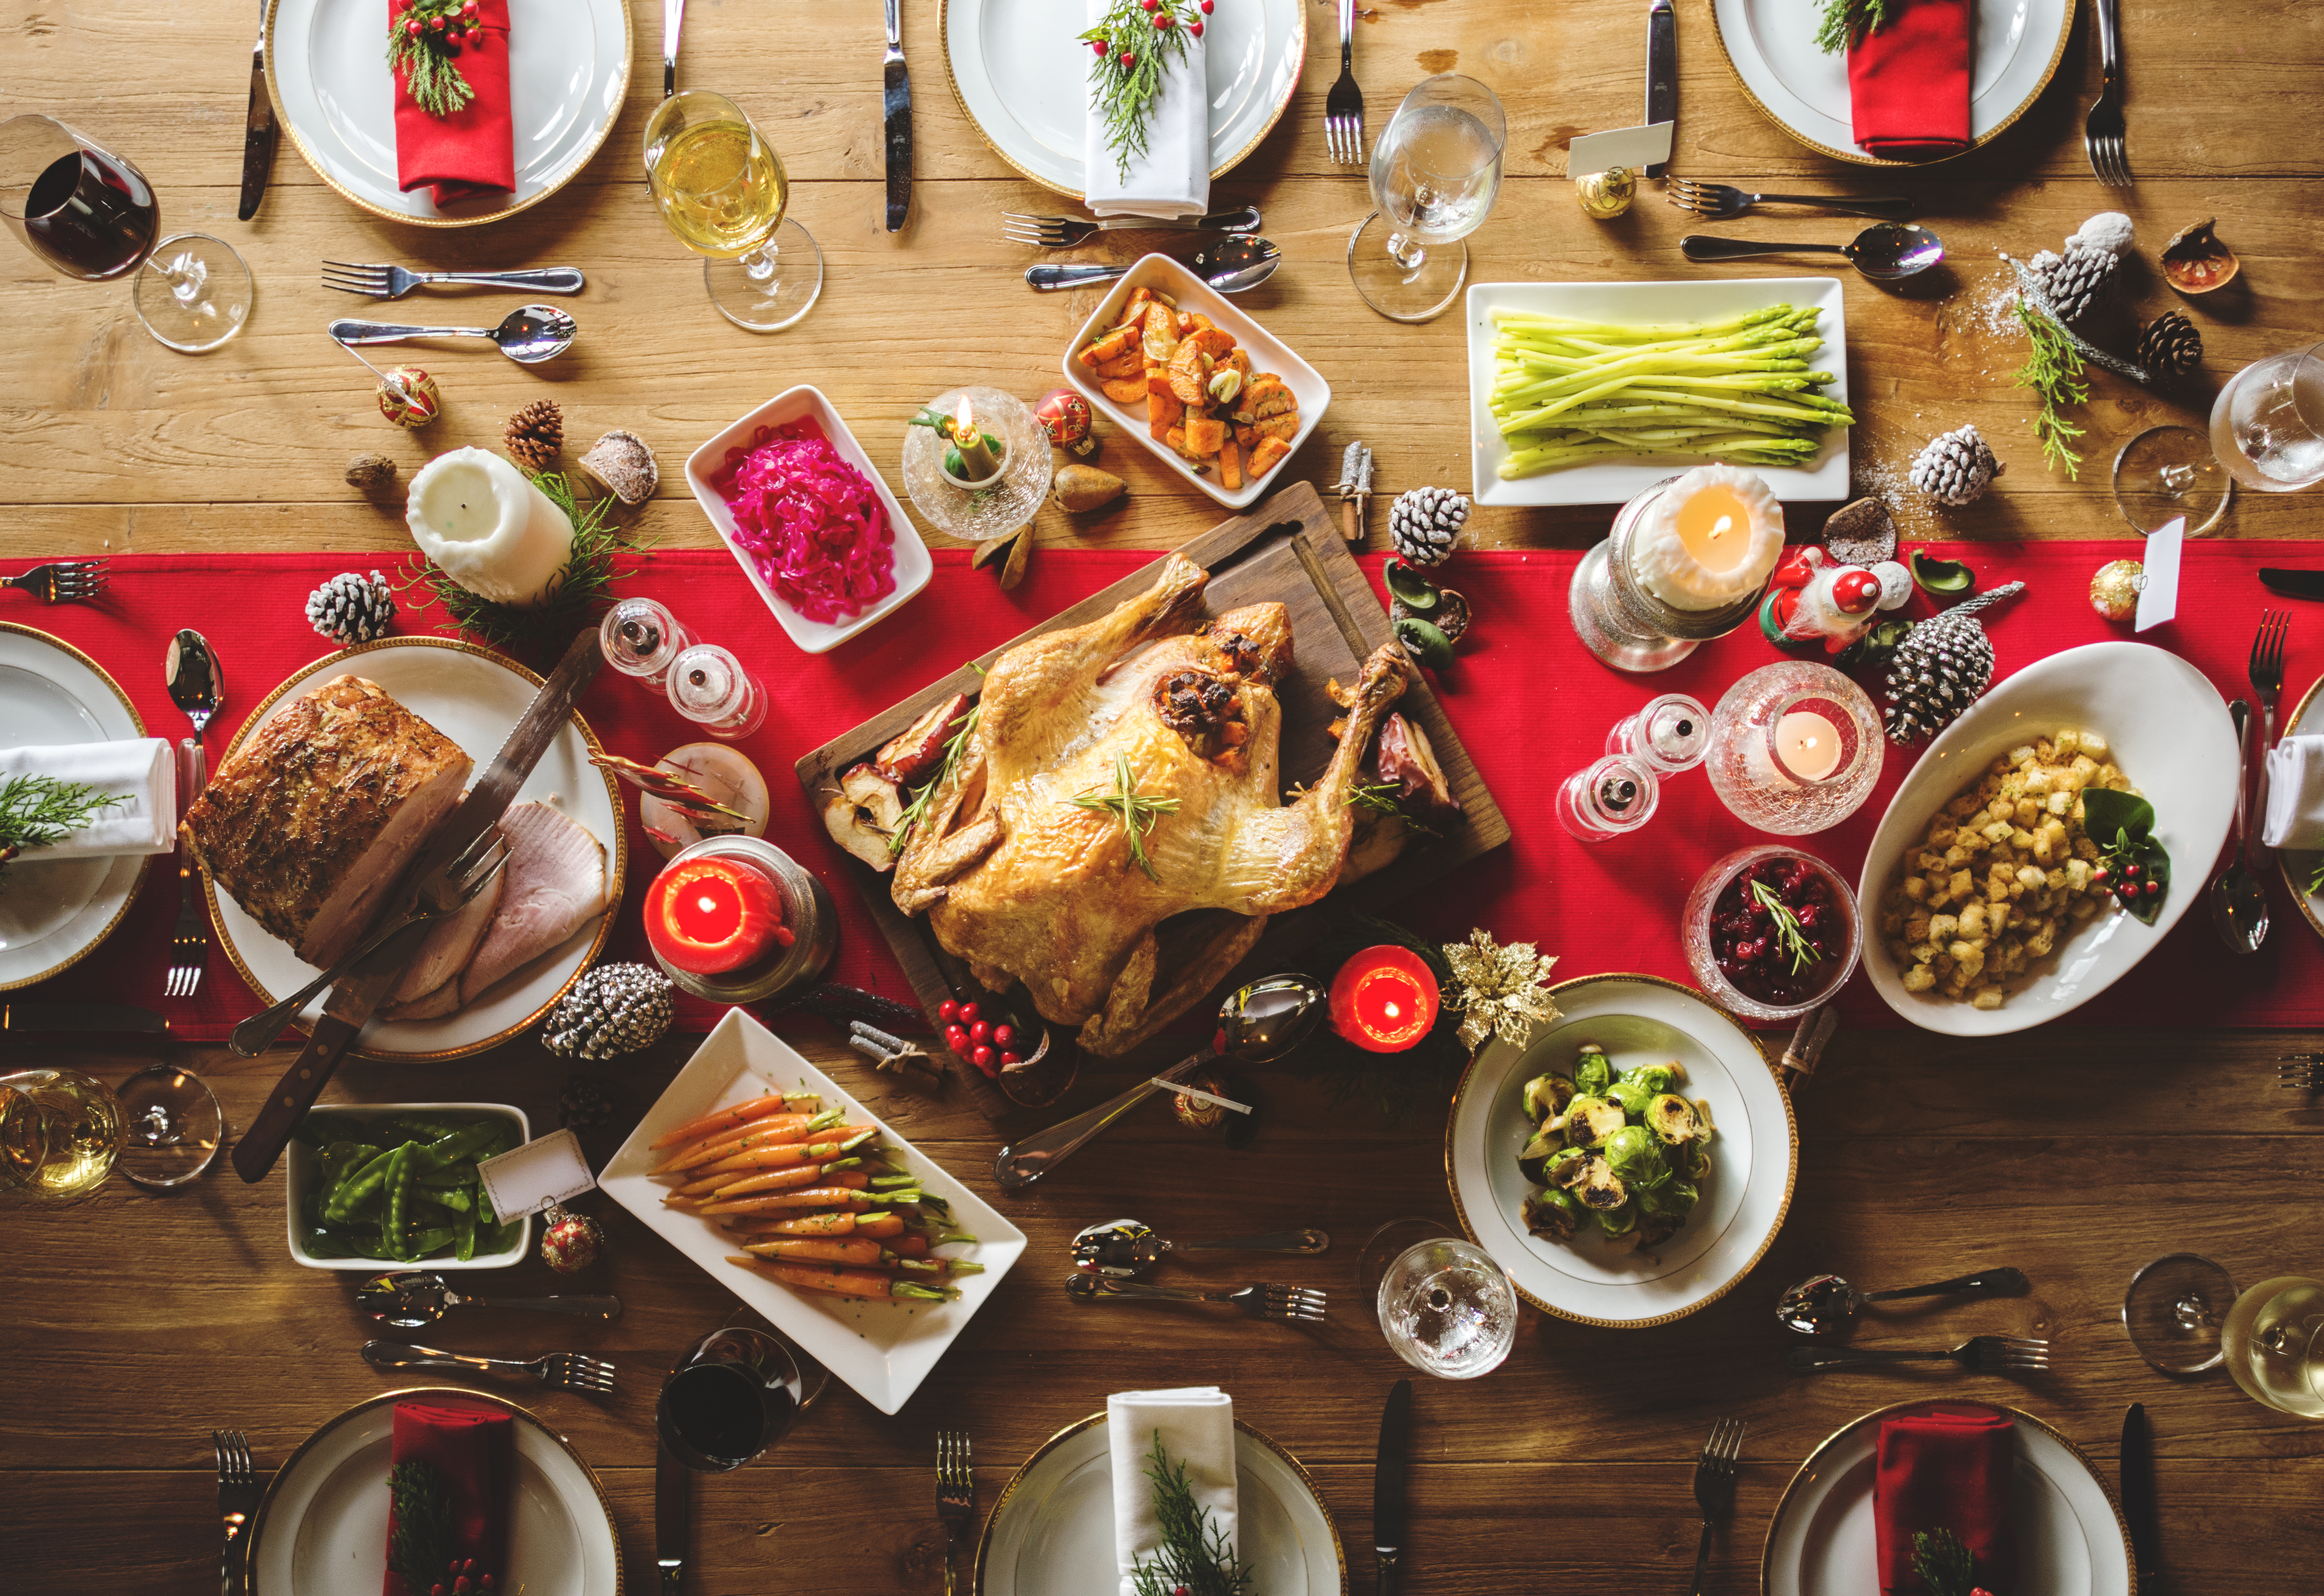 A stock photo that shows an overhead view of a festive table set for a holiday meal